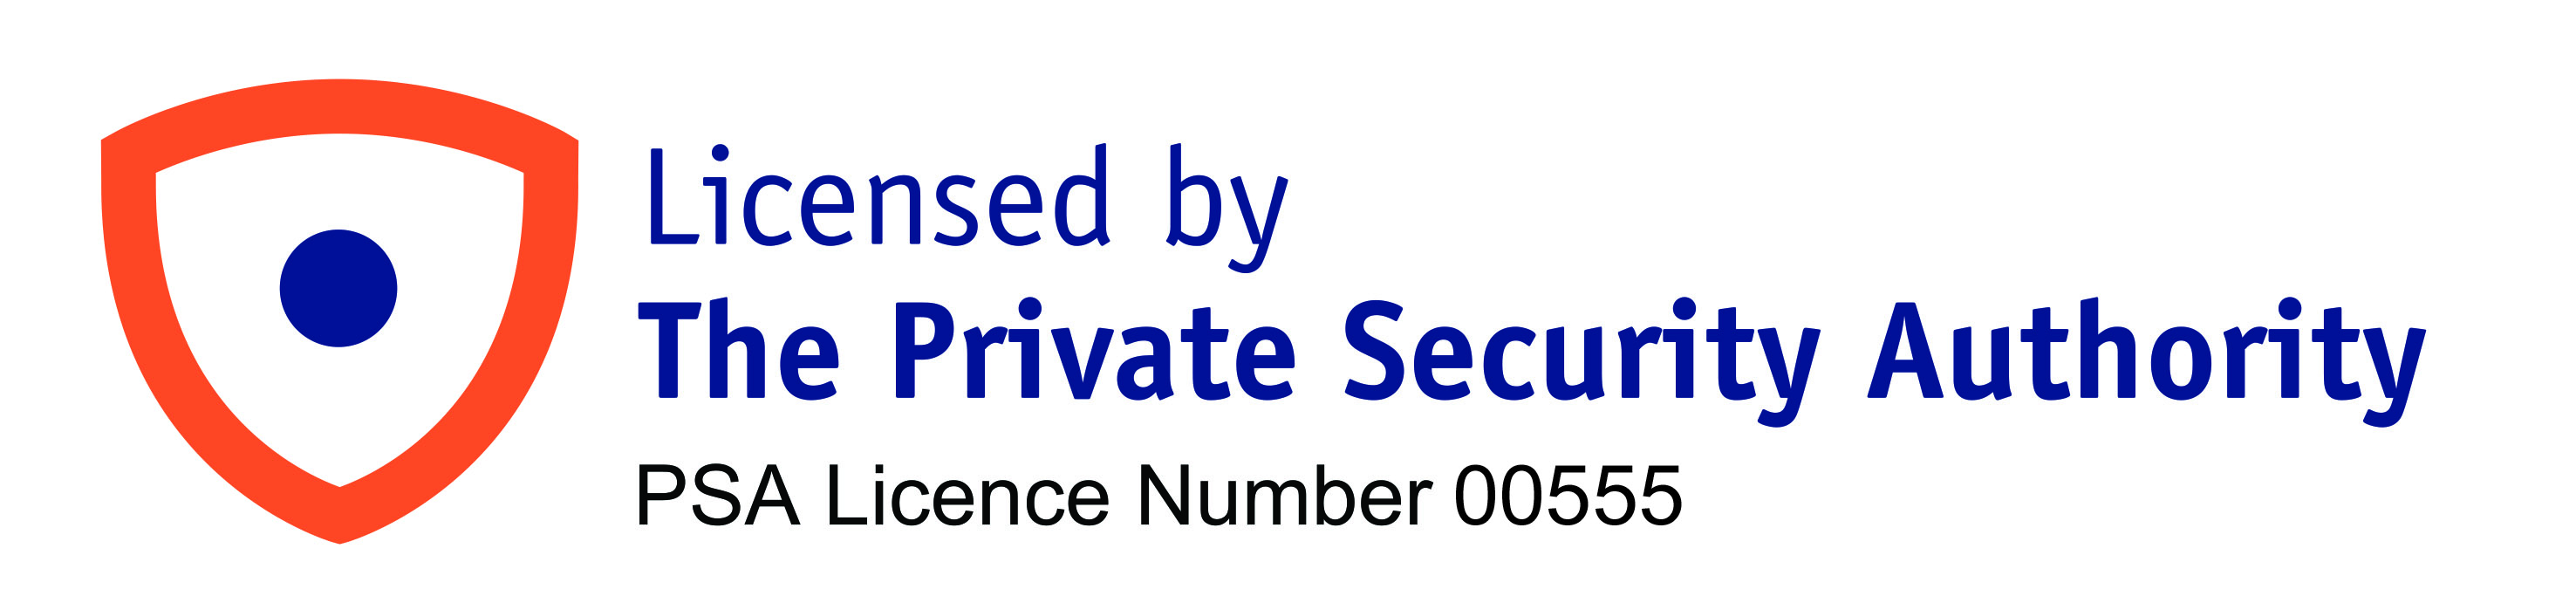 The Private Security Authority Logo photo - 1